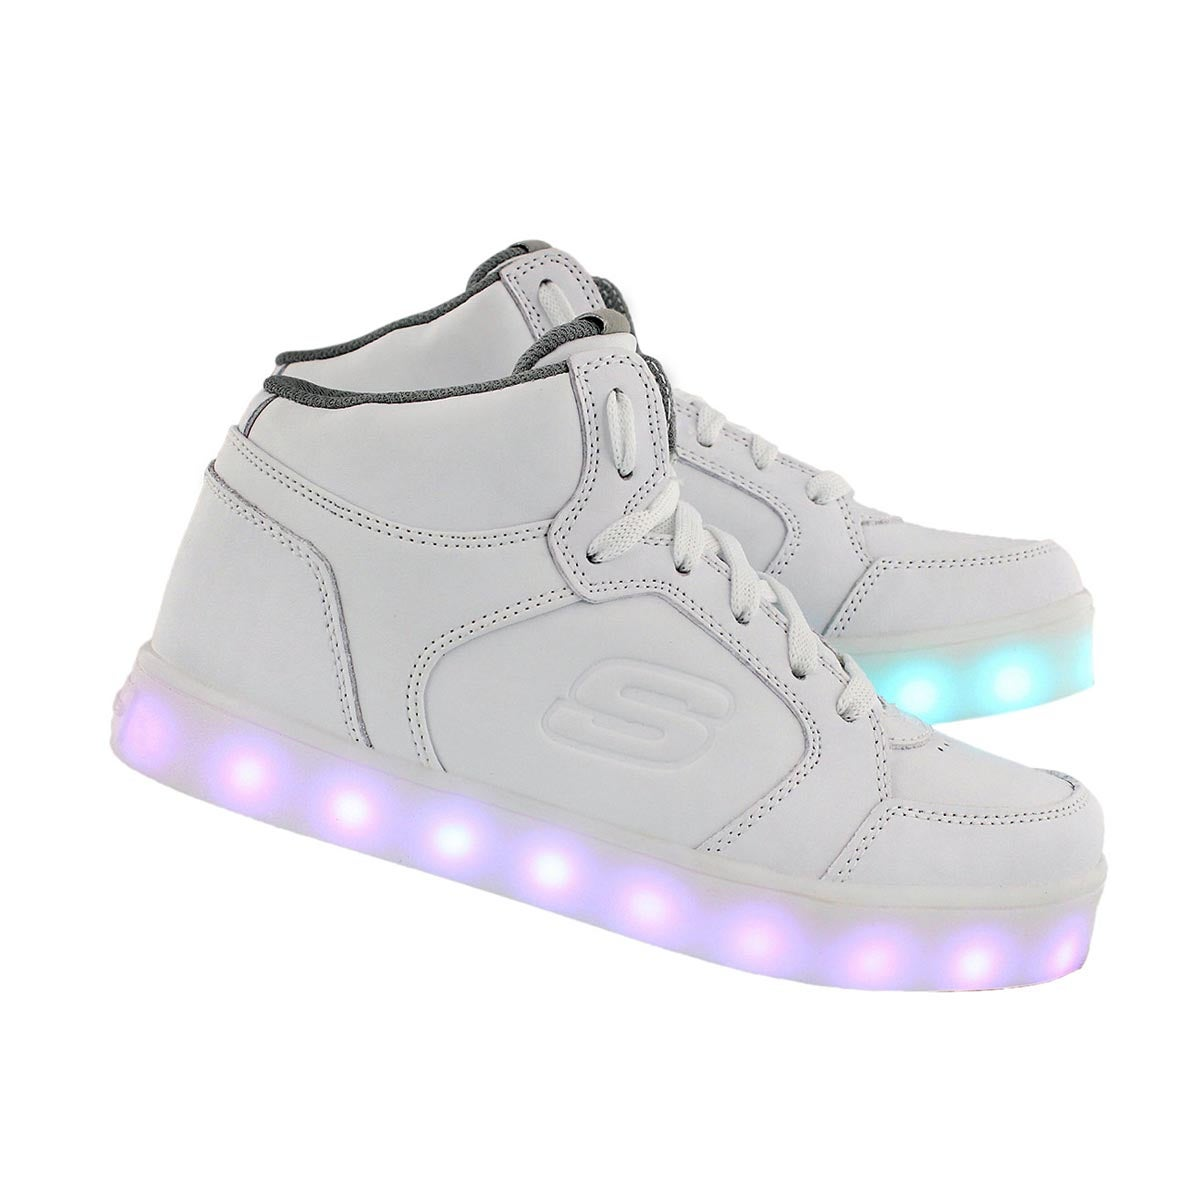 skechers shoes light up white. Kds Energy Lights Light Up Wht Sneaker Skechers Shoes White T